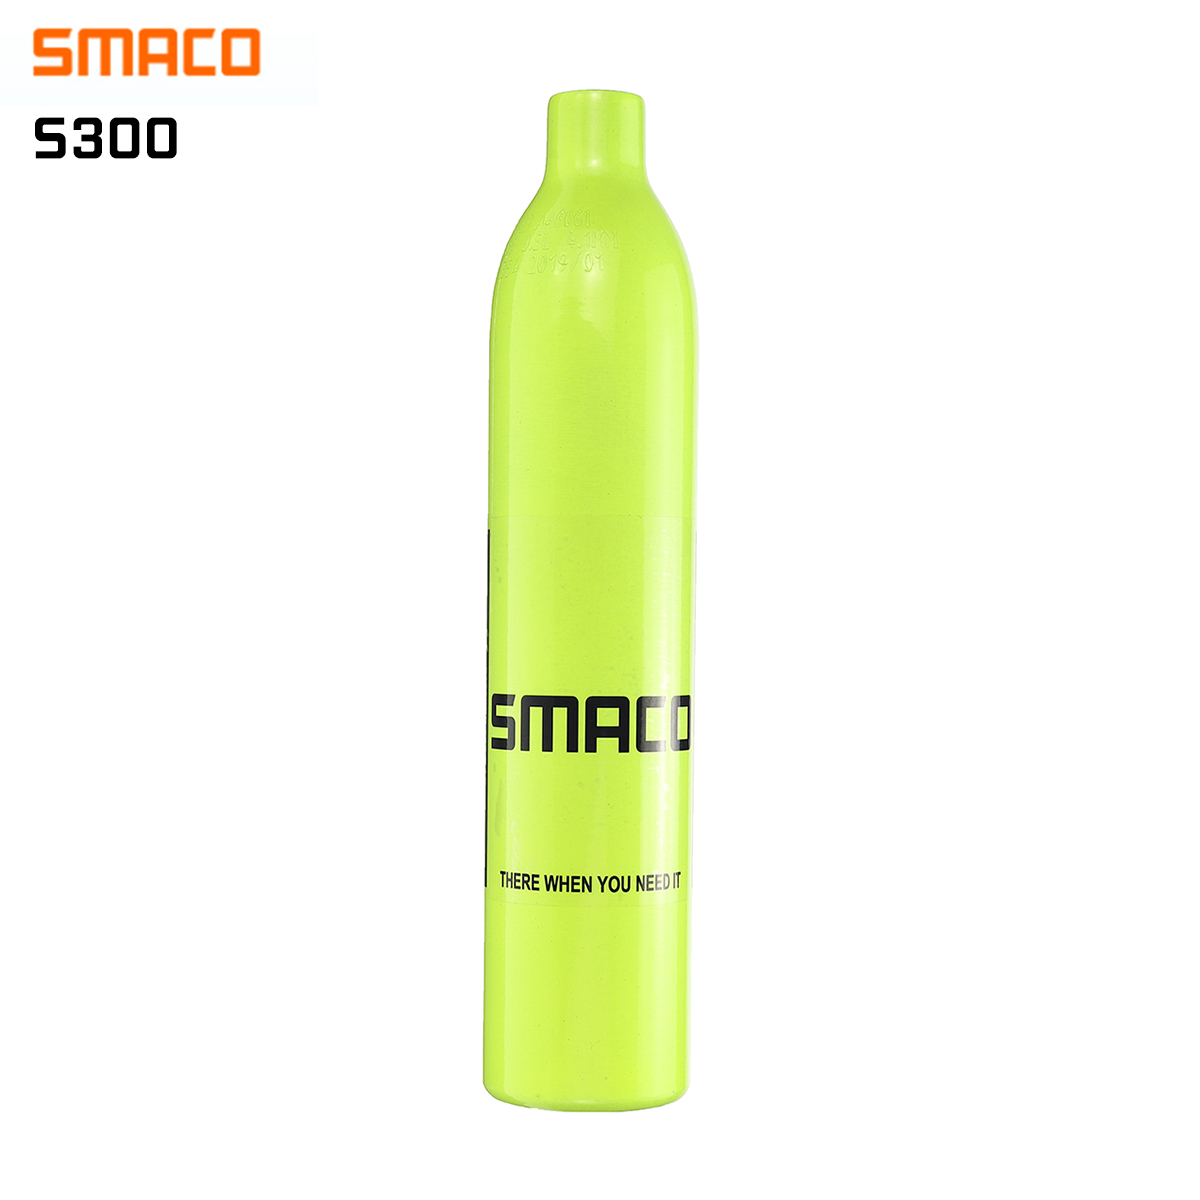 SMACO S300 0.5L Diving Equipment Mini Scuba Diving Cylinder Scuba Oxygen Cylinder Air Tanks Without Head